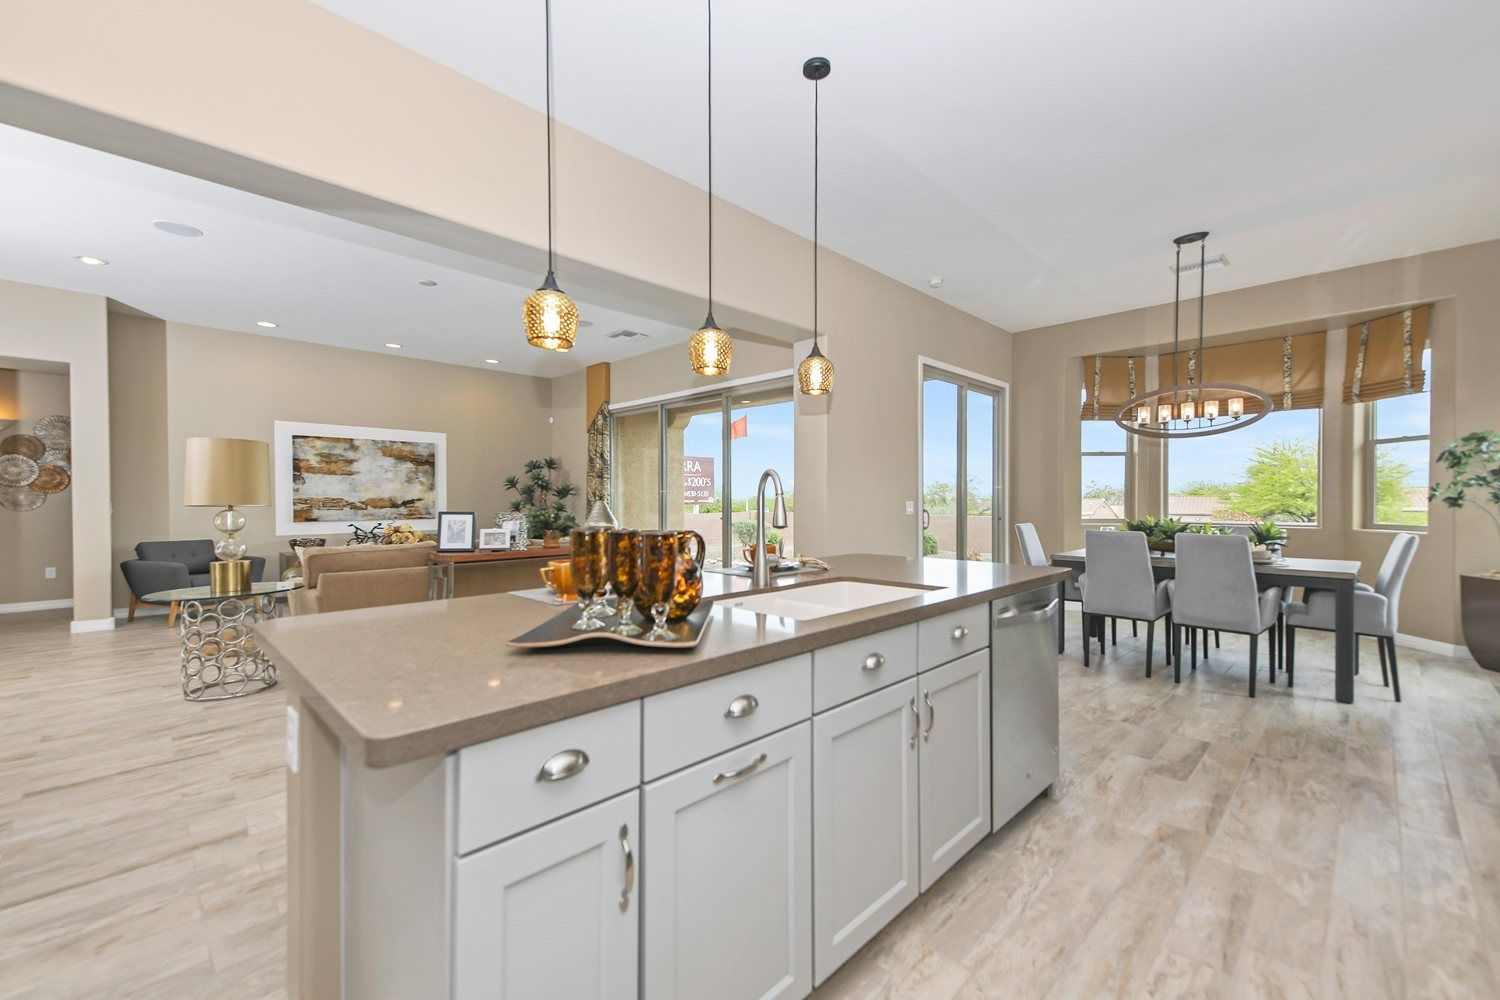 Kitchen featured in the Cimarron By Fairfield Homes in Tucson, AZ